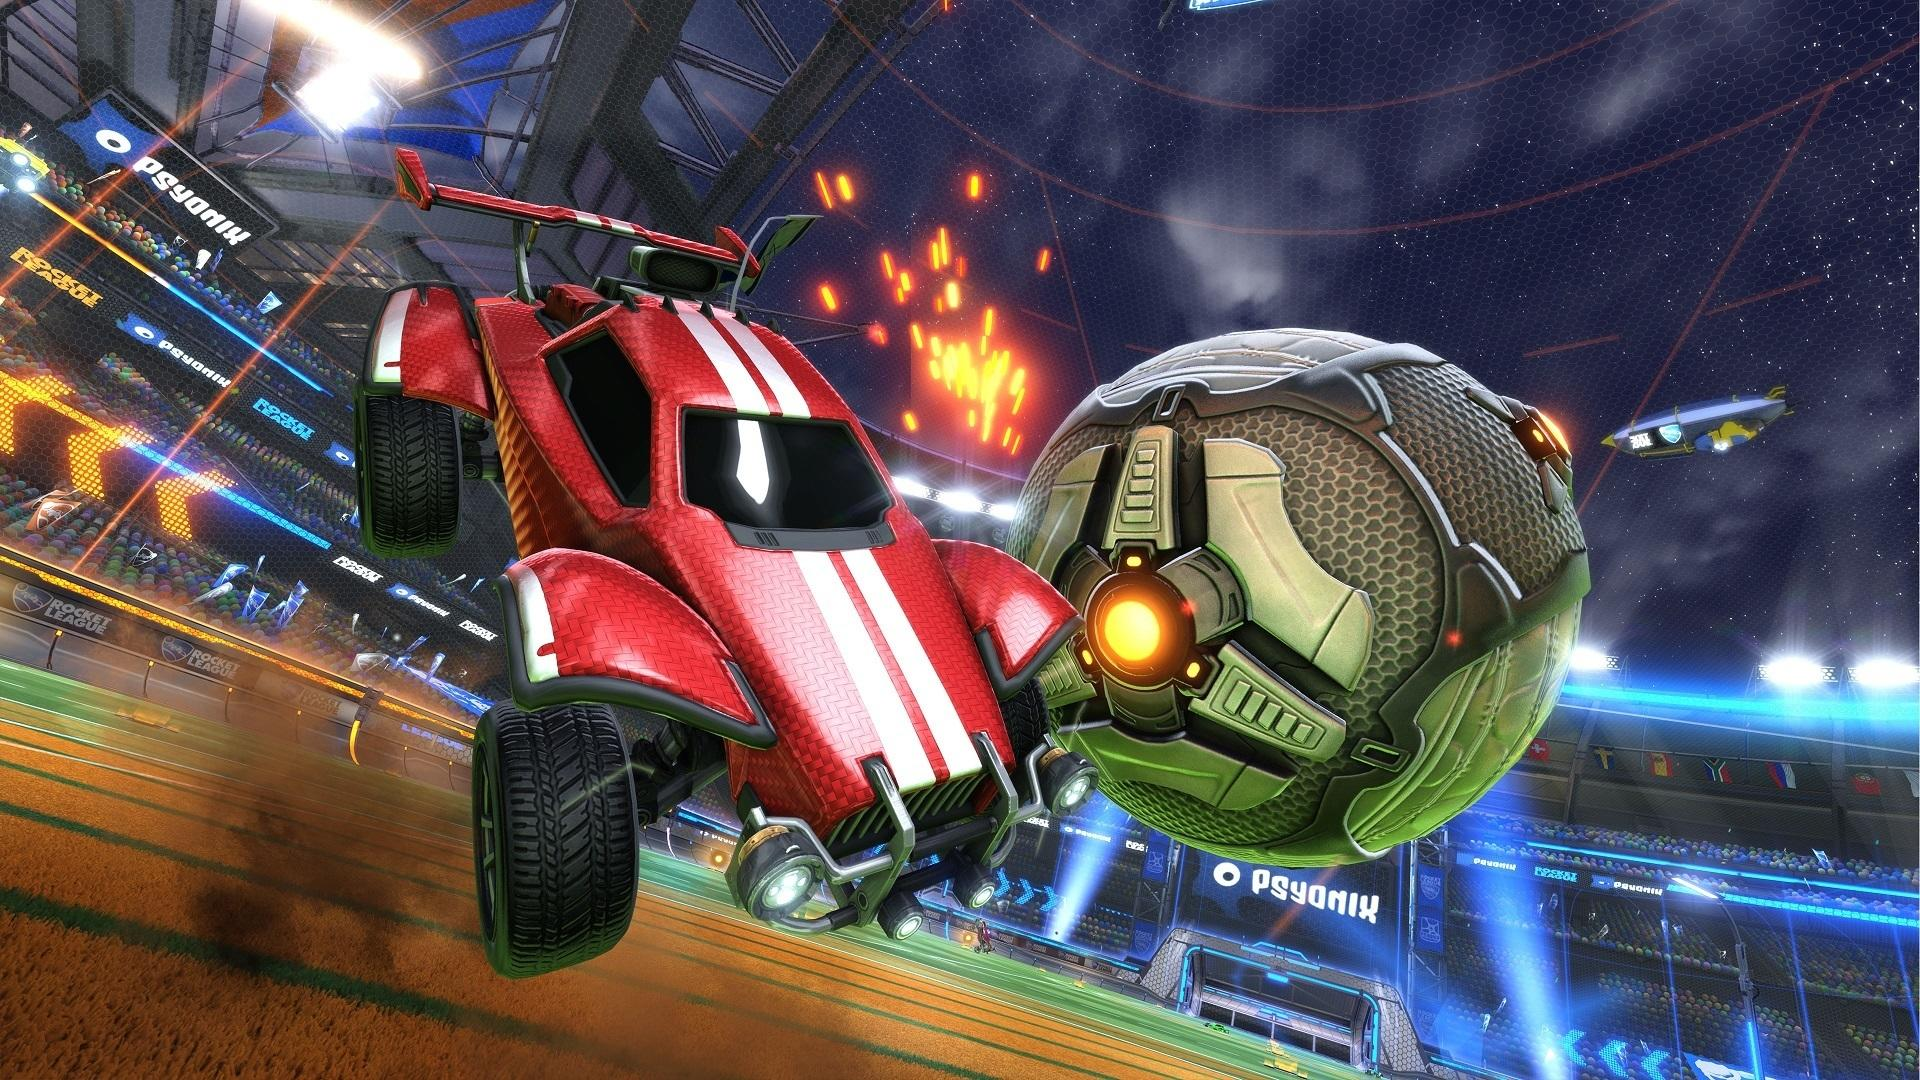 Rocket League is another lovely feather in Epic's already plush cap